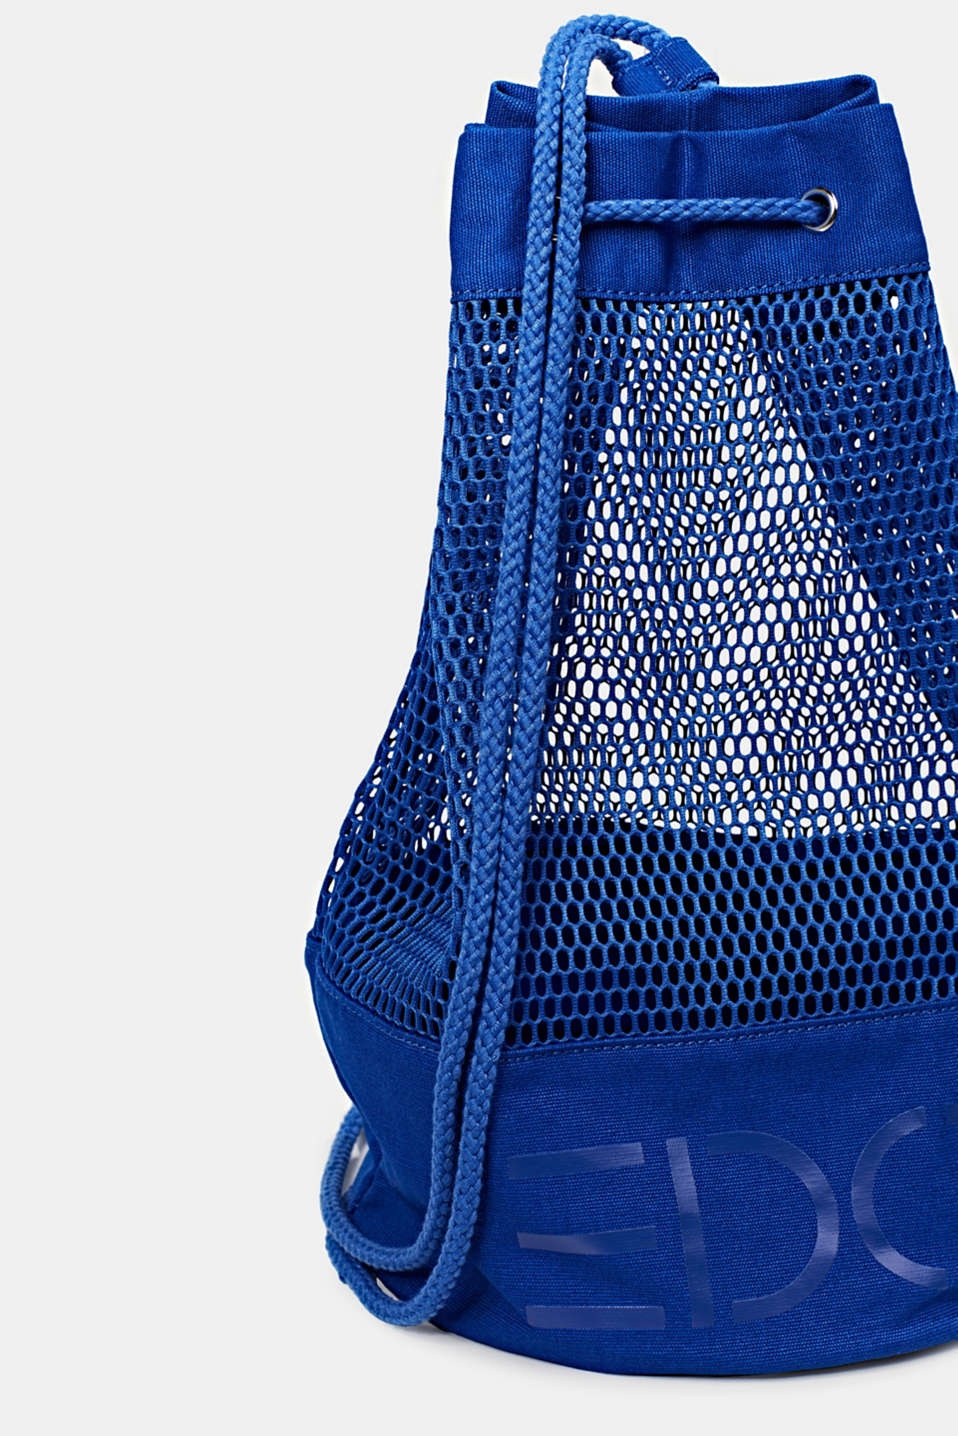 Airy mesh bag, BRIGHT BLUE, detail image number 3